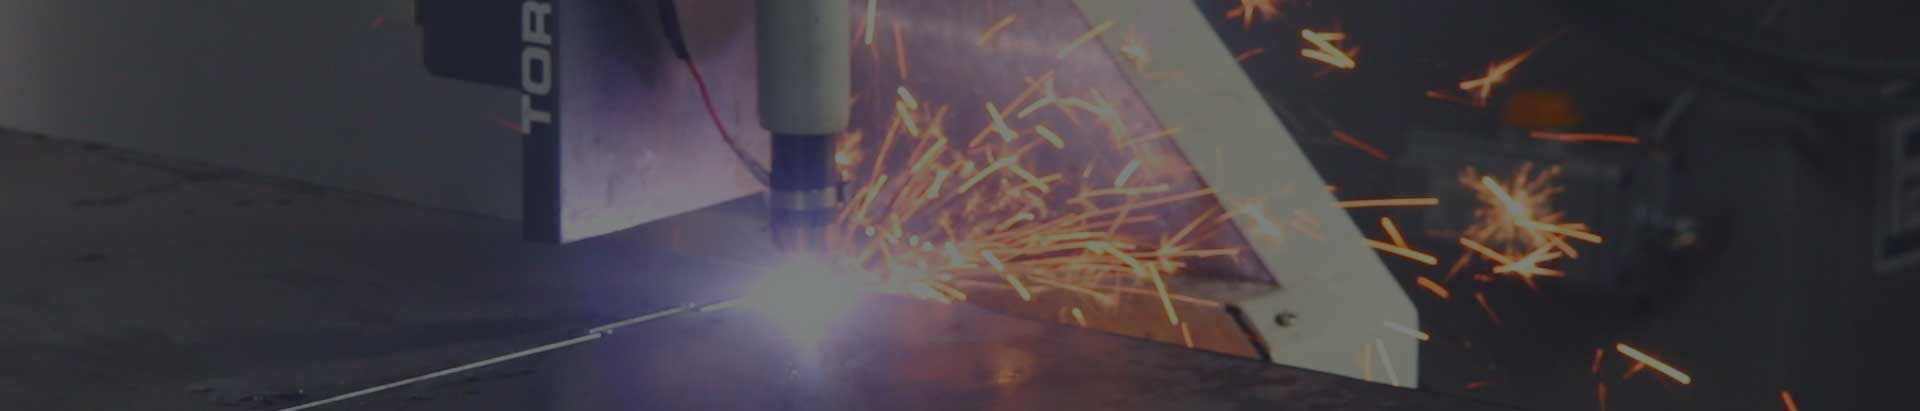 Plasma Support cutting footage